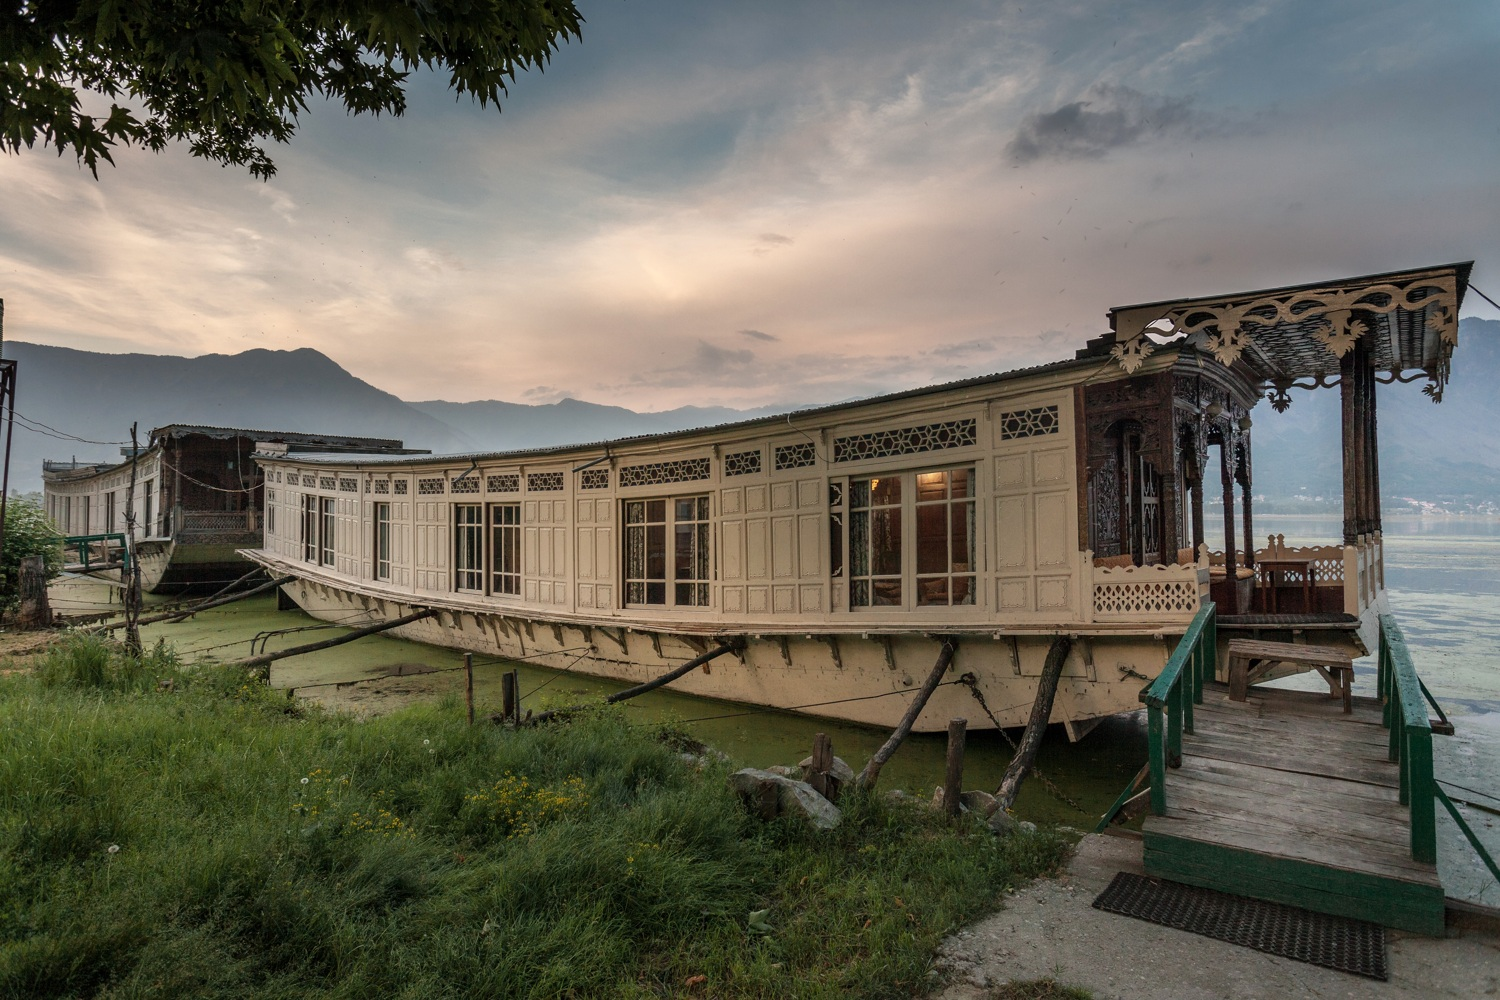 Butts-Claremont Houseboat, Srinagar, Kashmir